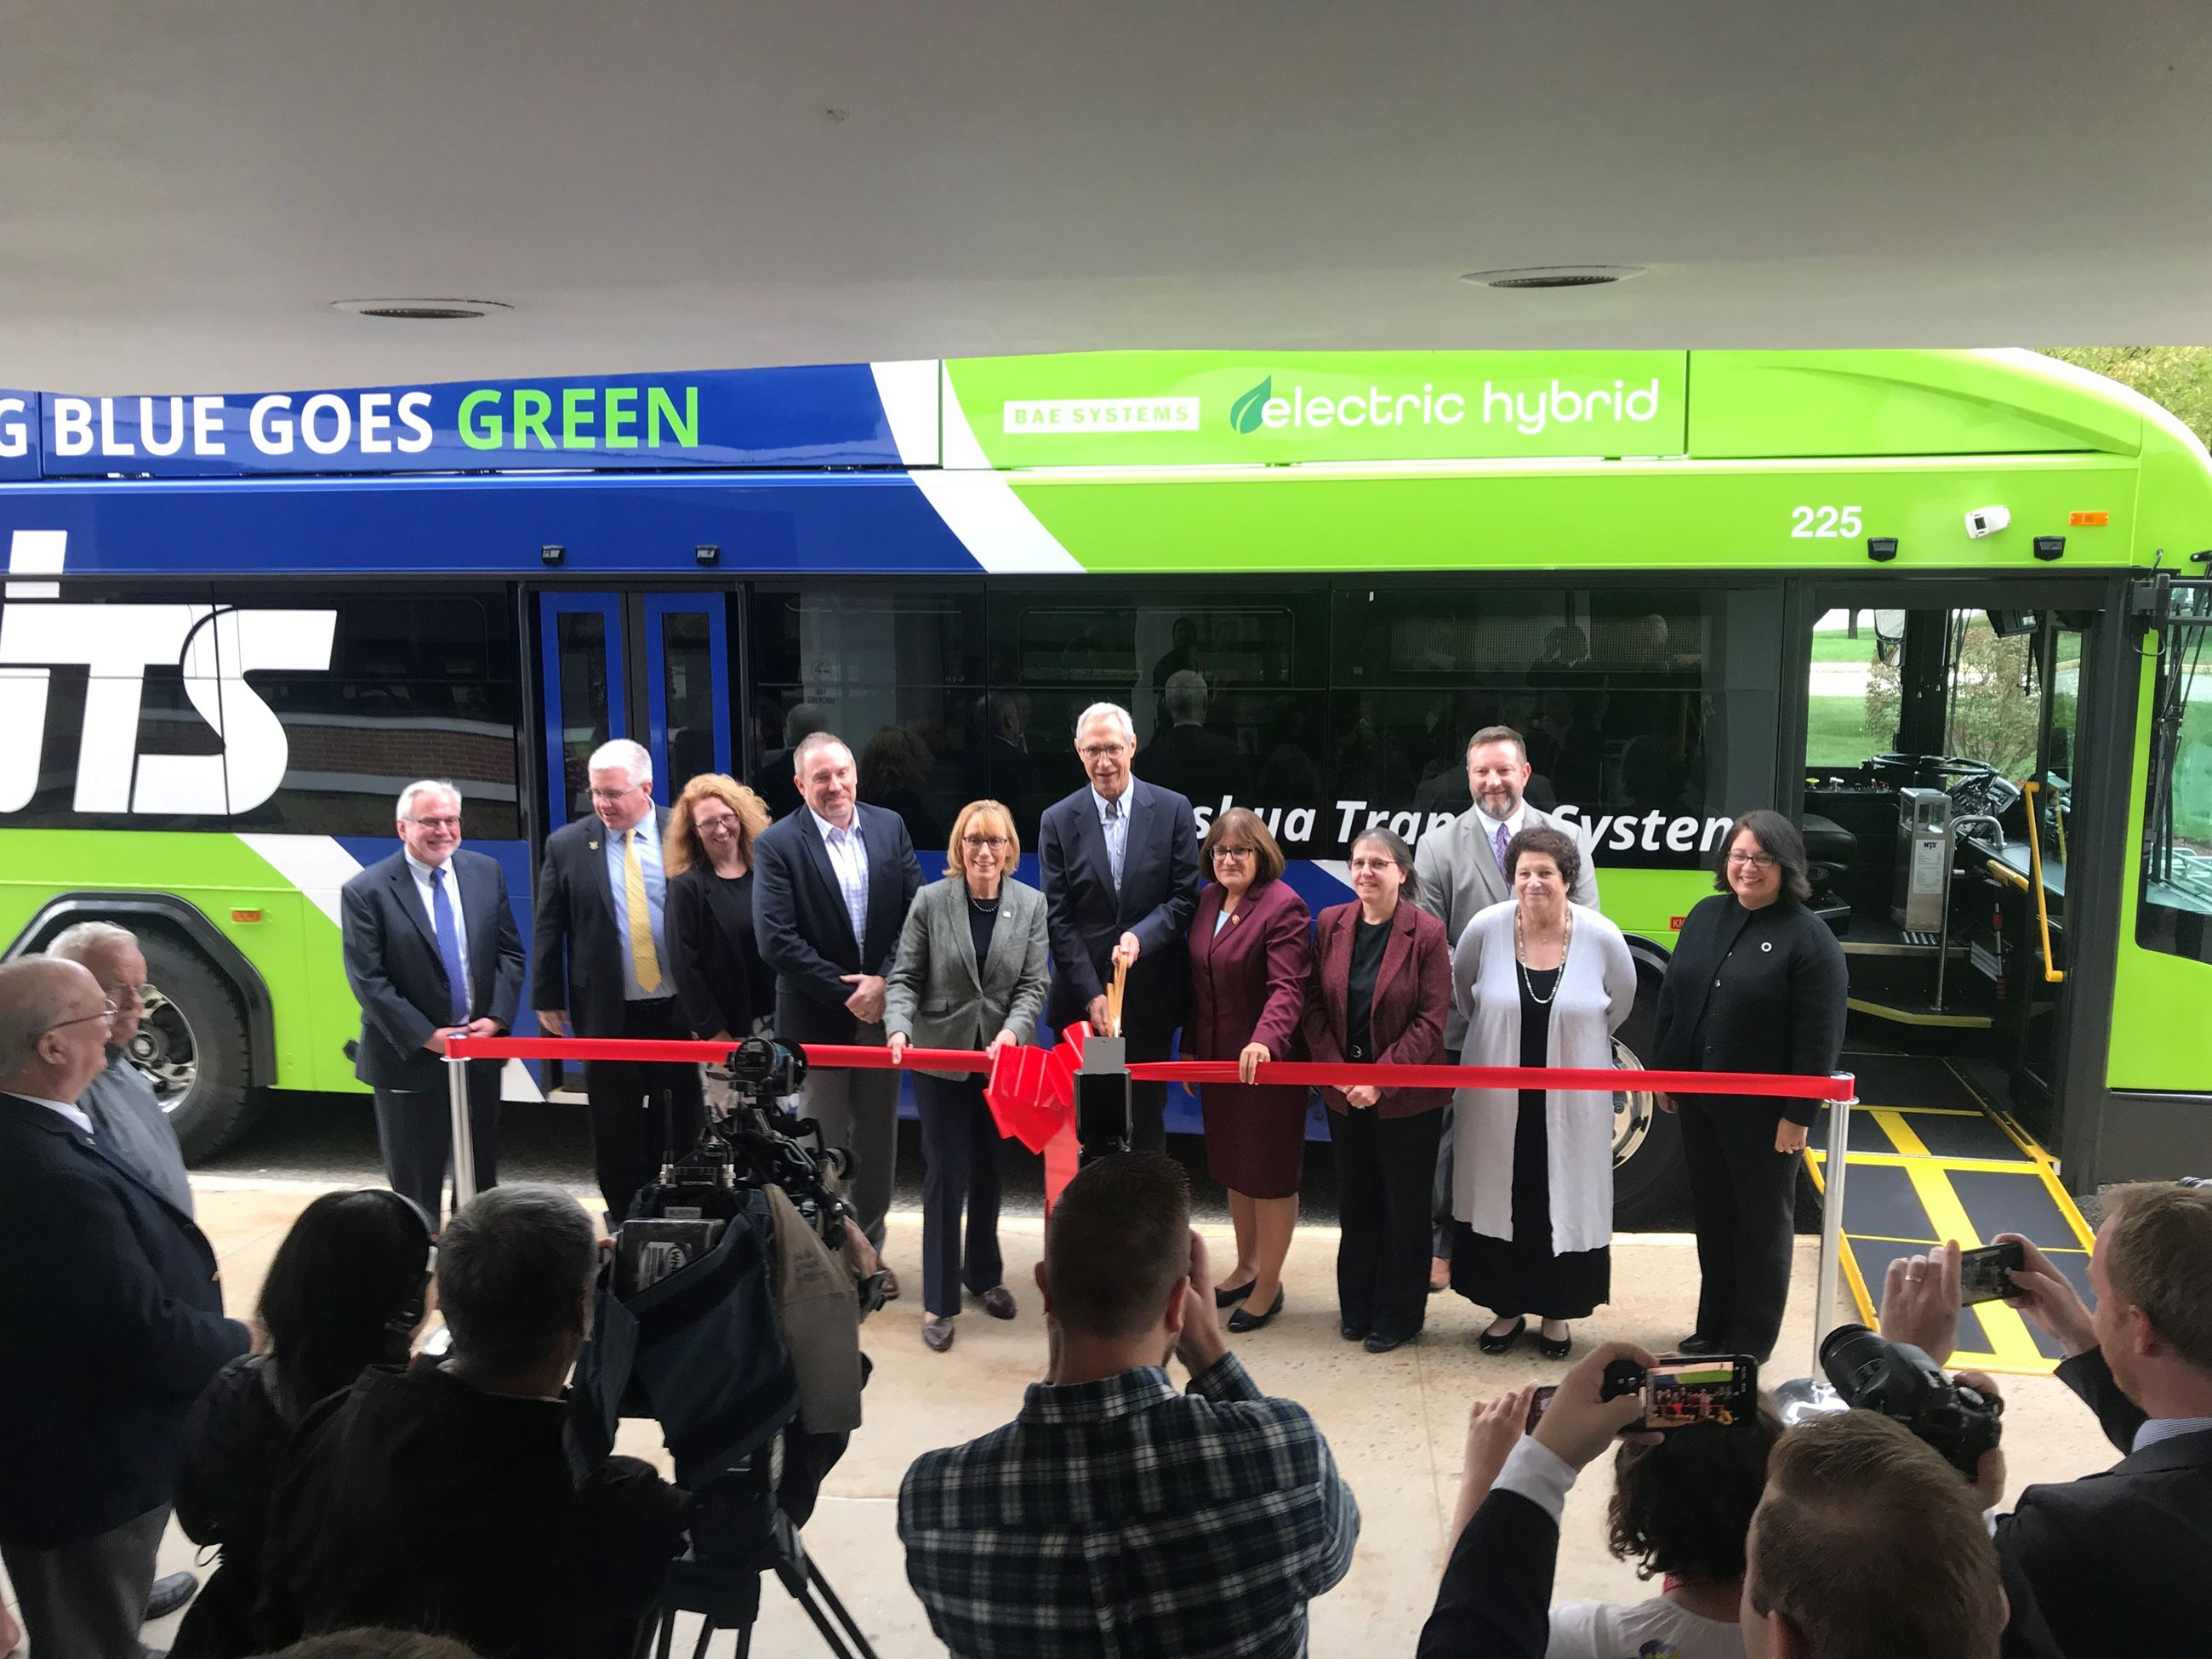 Sen. Hassan, State Sen. Rosenwald, Congresswoman Kuster, & Mayor Donchess cut ribbon for new buses